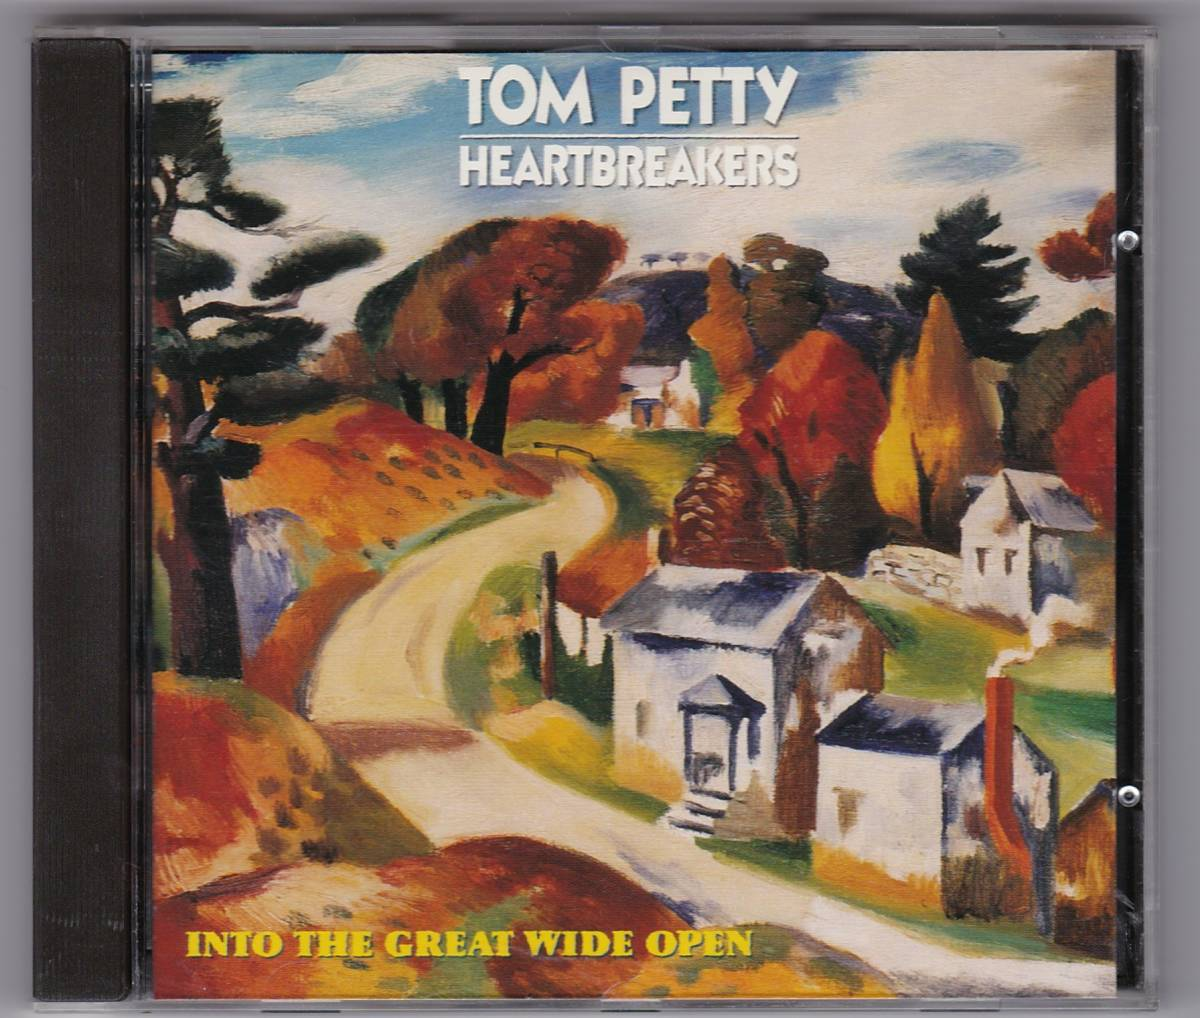 Tom Petty & The Heartbreakers / Into The Great Wide Open トム・ペティ&ハート・ブレイカーズ 中古CD 輸入盤 送料込